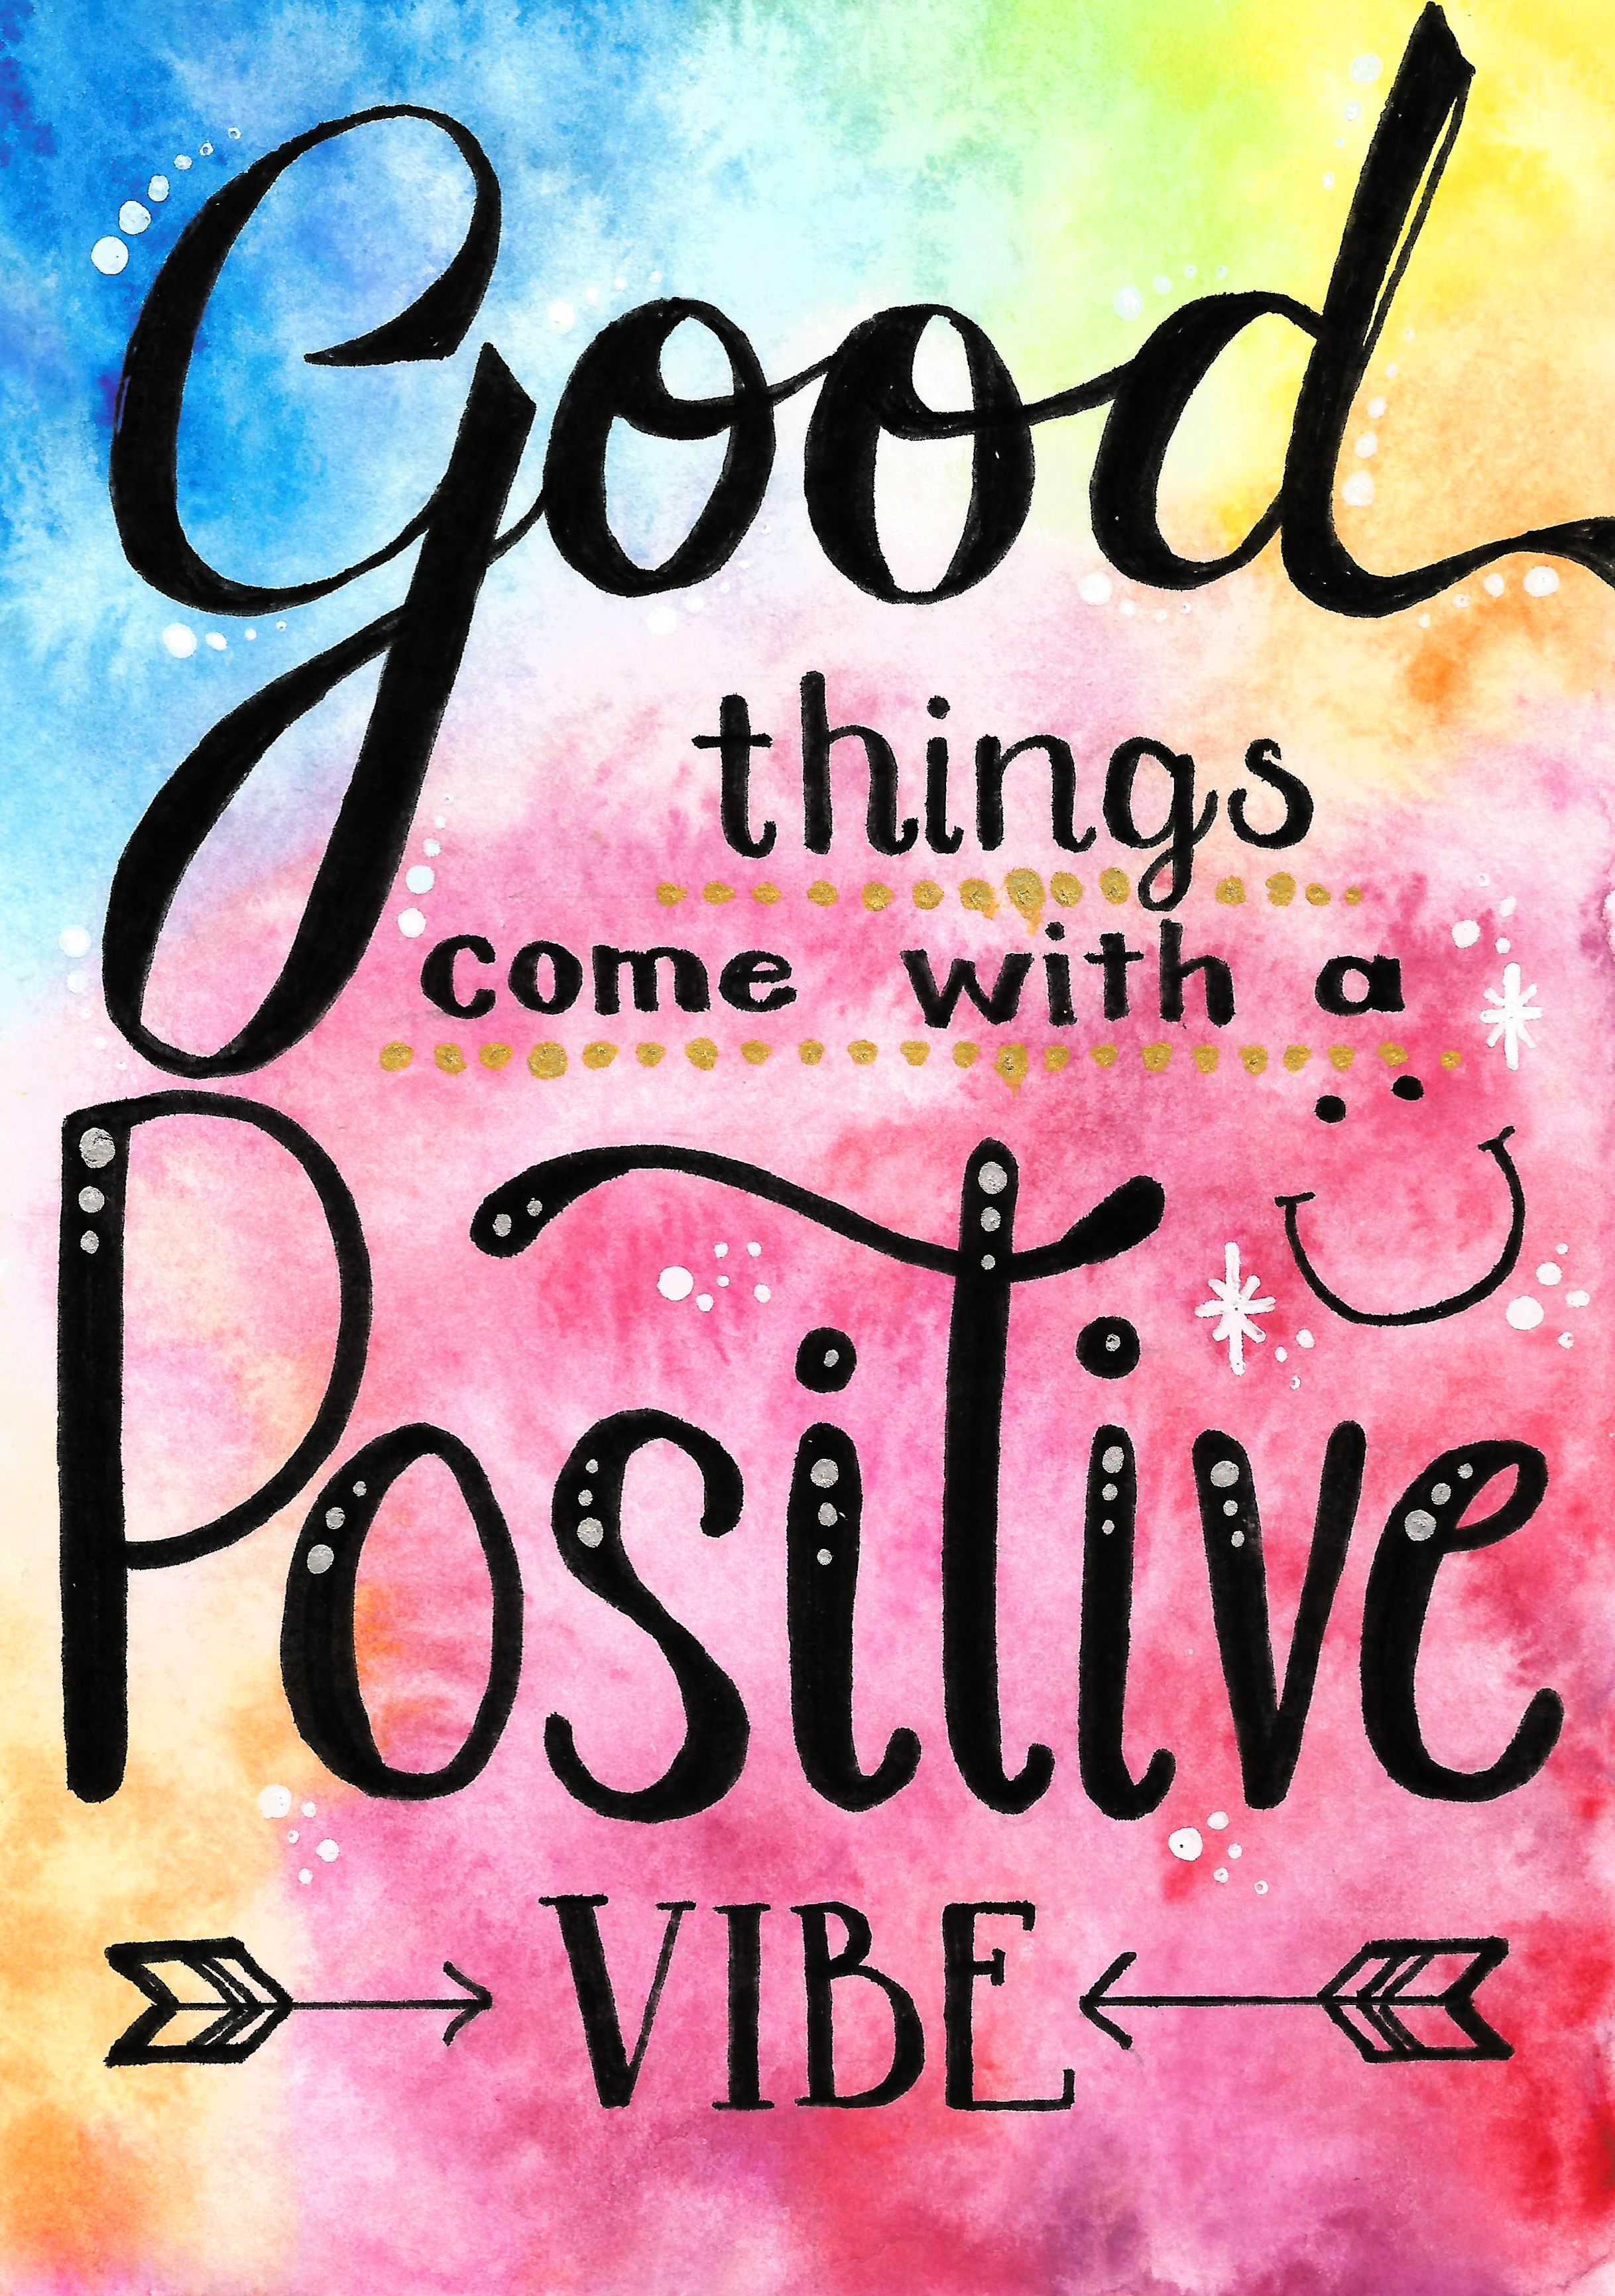 This great quote is a nice reminder to stay positive, and